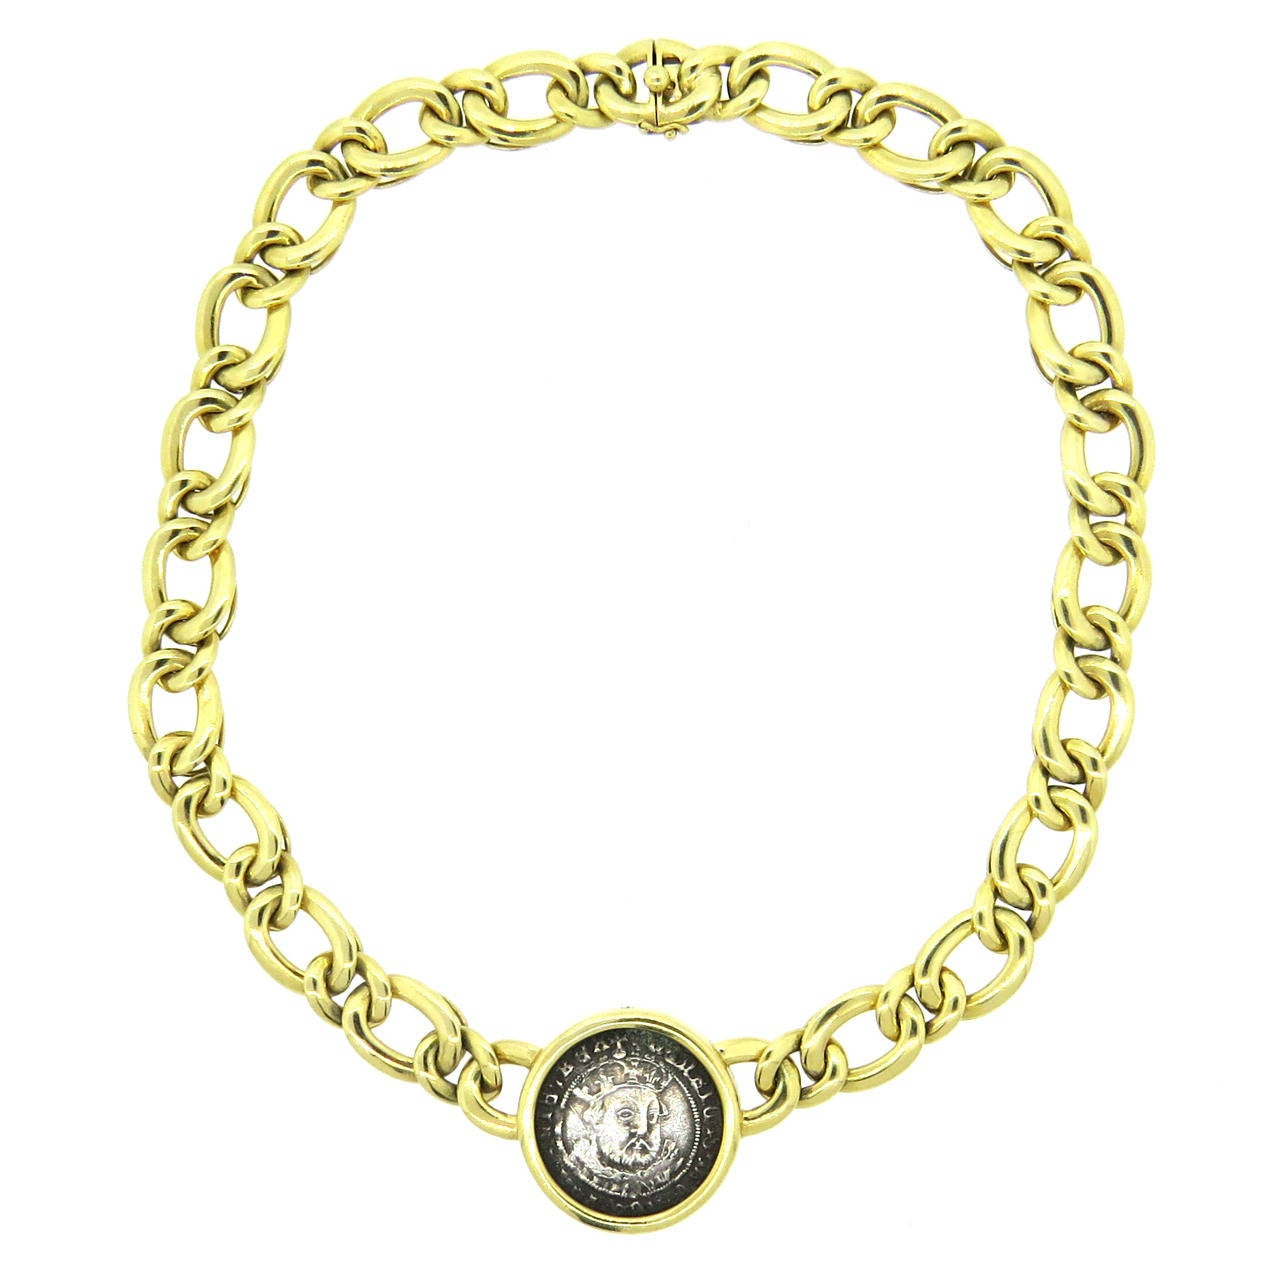 bulgari monete ancient coin henry viii gold necklace 1